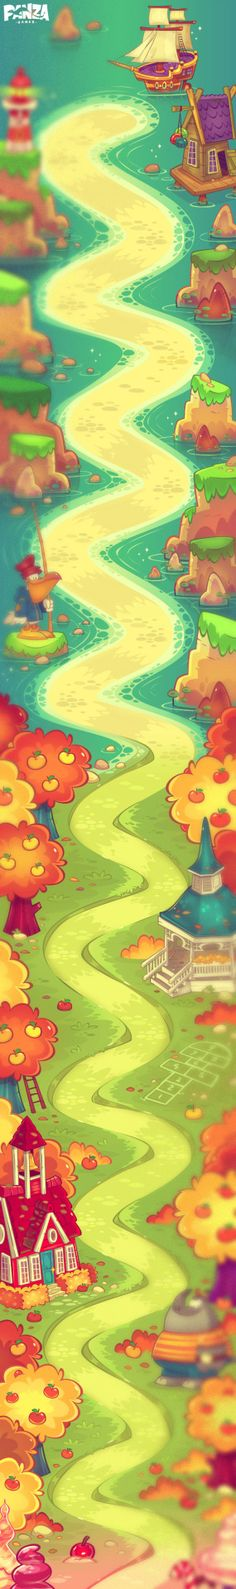 N/A Game Concept, Concept Art, Map Games, Candy Games, Global Map, 2d Game Art, Bubble Games, Blue Boat, Game Interface